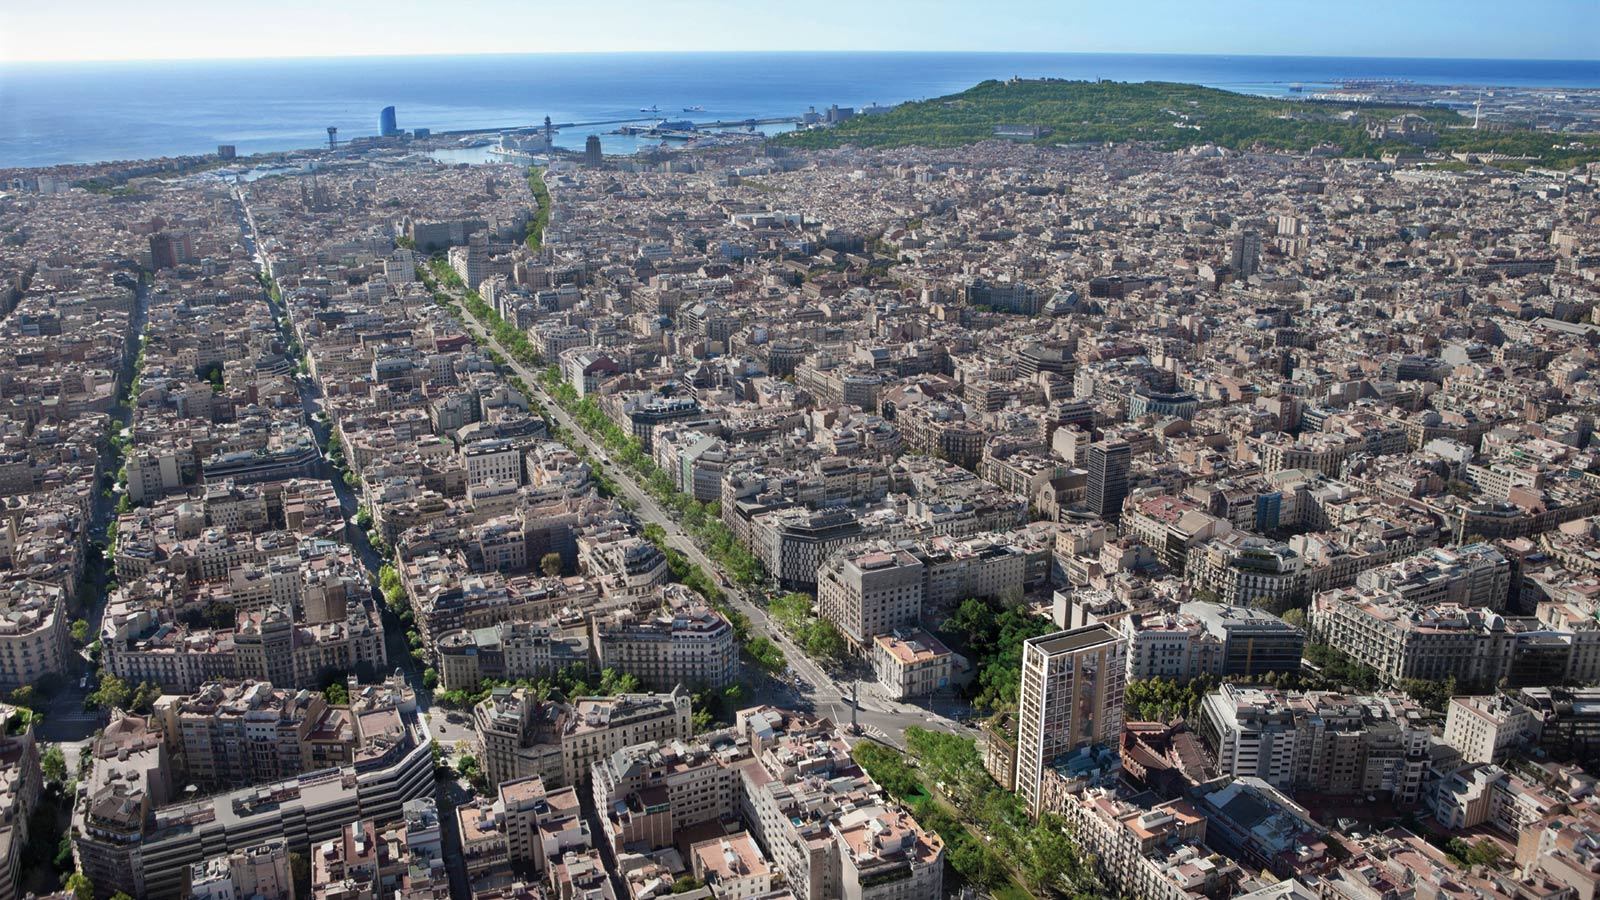 Computer enhanced image of Barcelona – aerial view